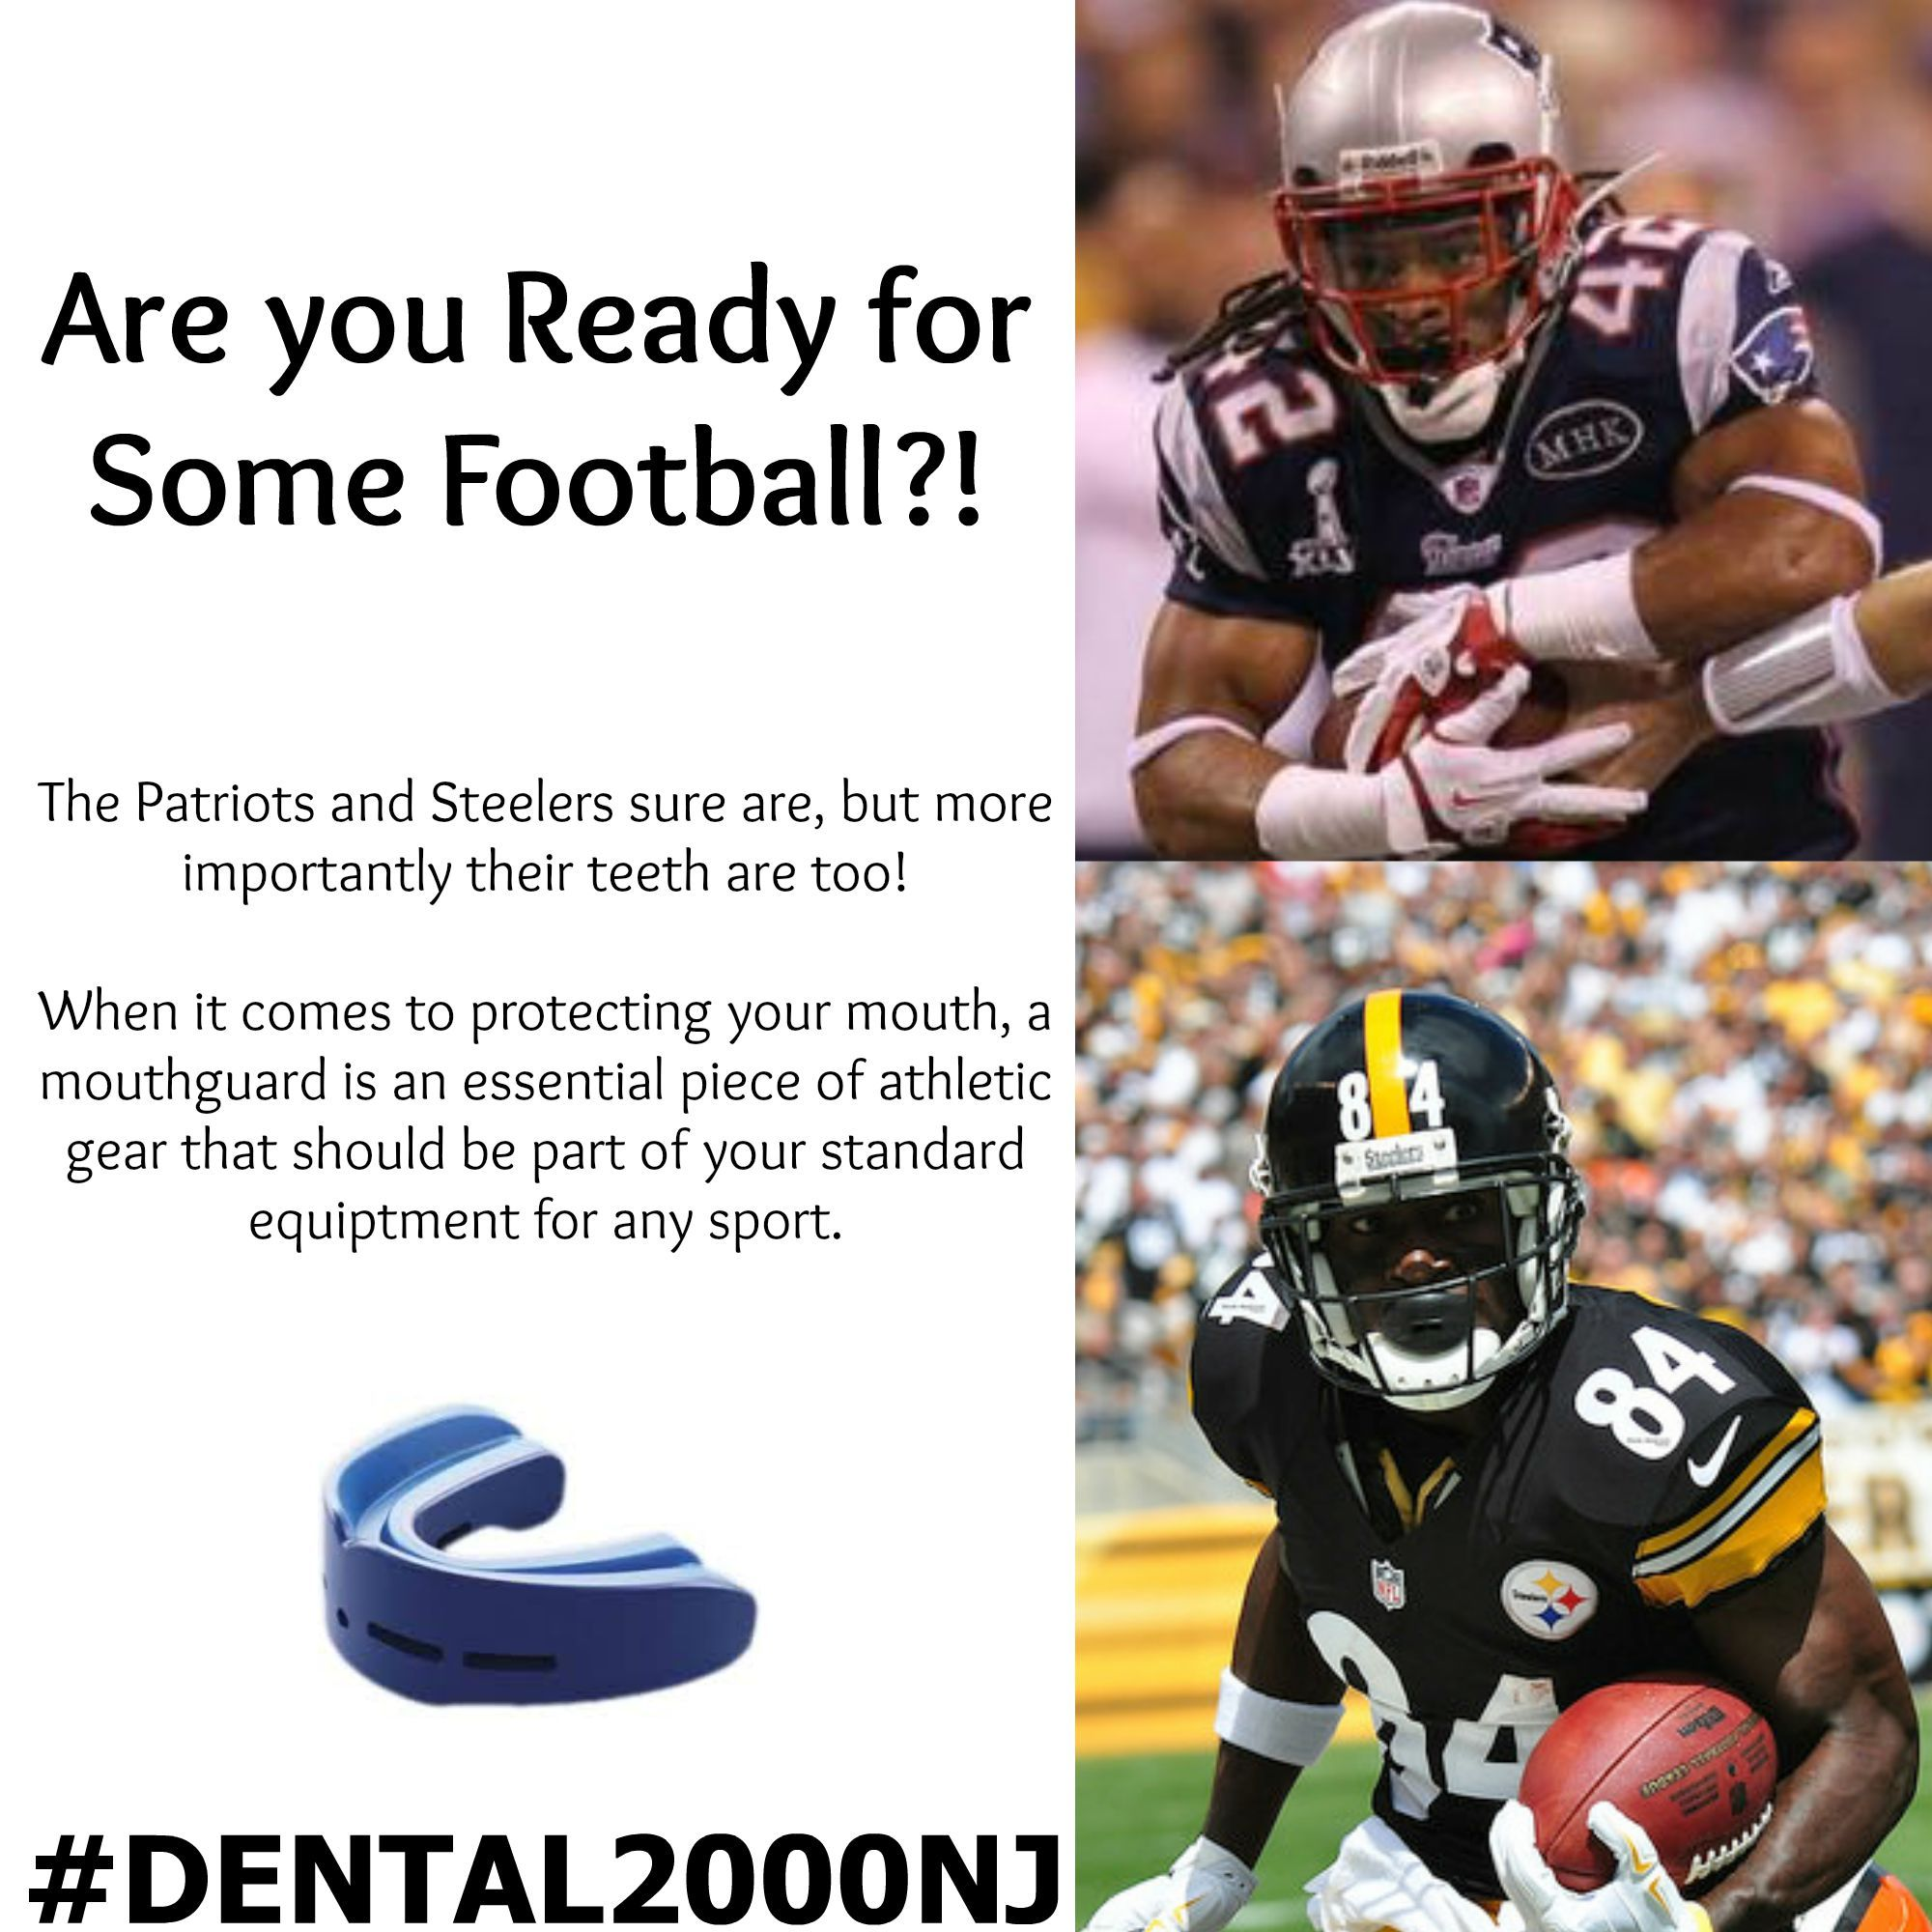 The time has come for the start of a new #NFL season! The #Steelers and #Patriots  are ready...and so are their teeth! Dental 2000 recommends any and all athletes of any age wear a mouthguard during contact sports to protect their teeth. It's an investment worth making! #Dental2000NJ